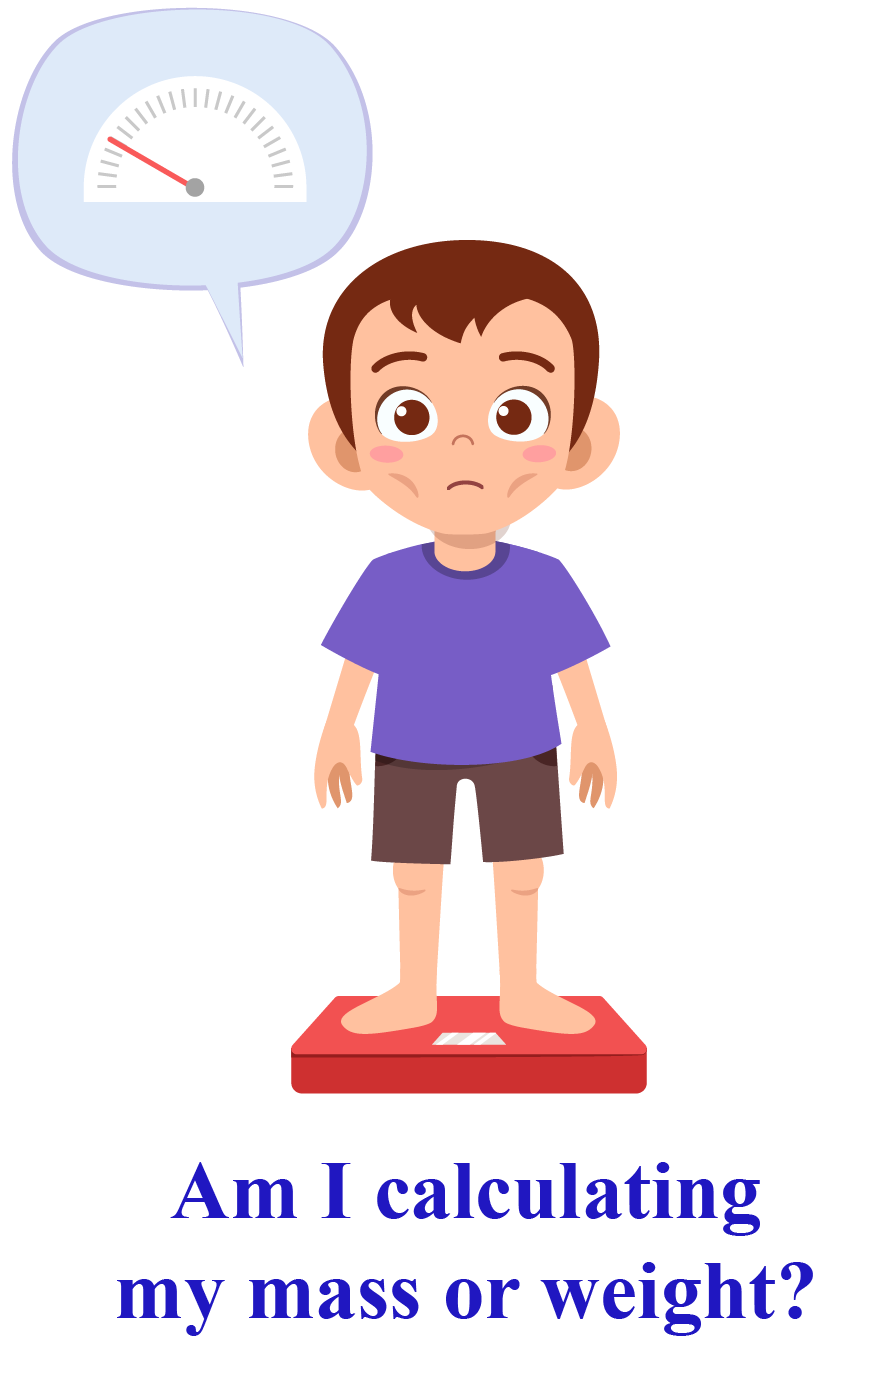 a boy standing on a weighing scale